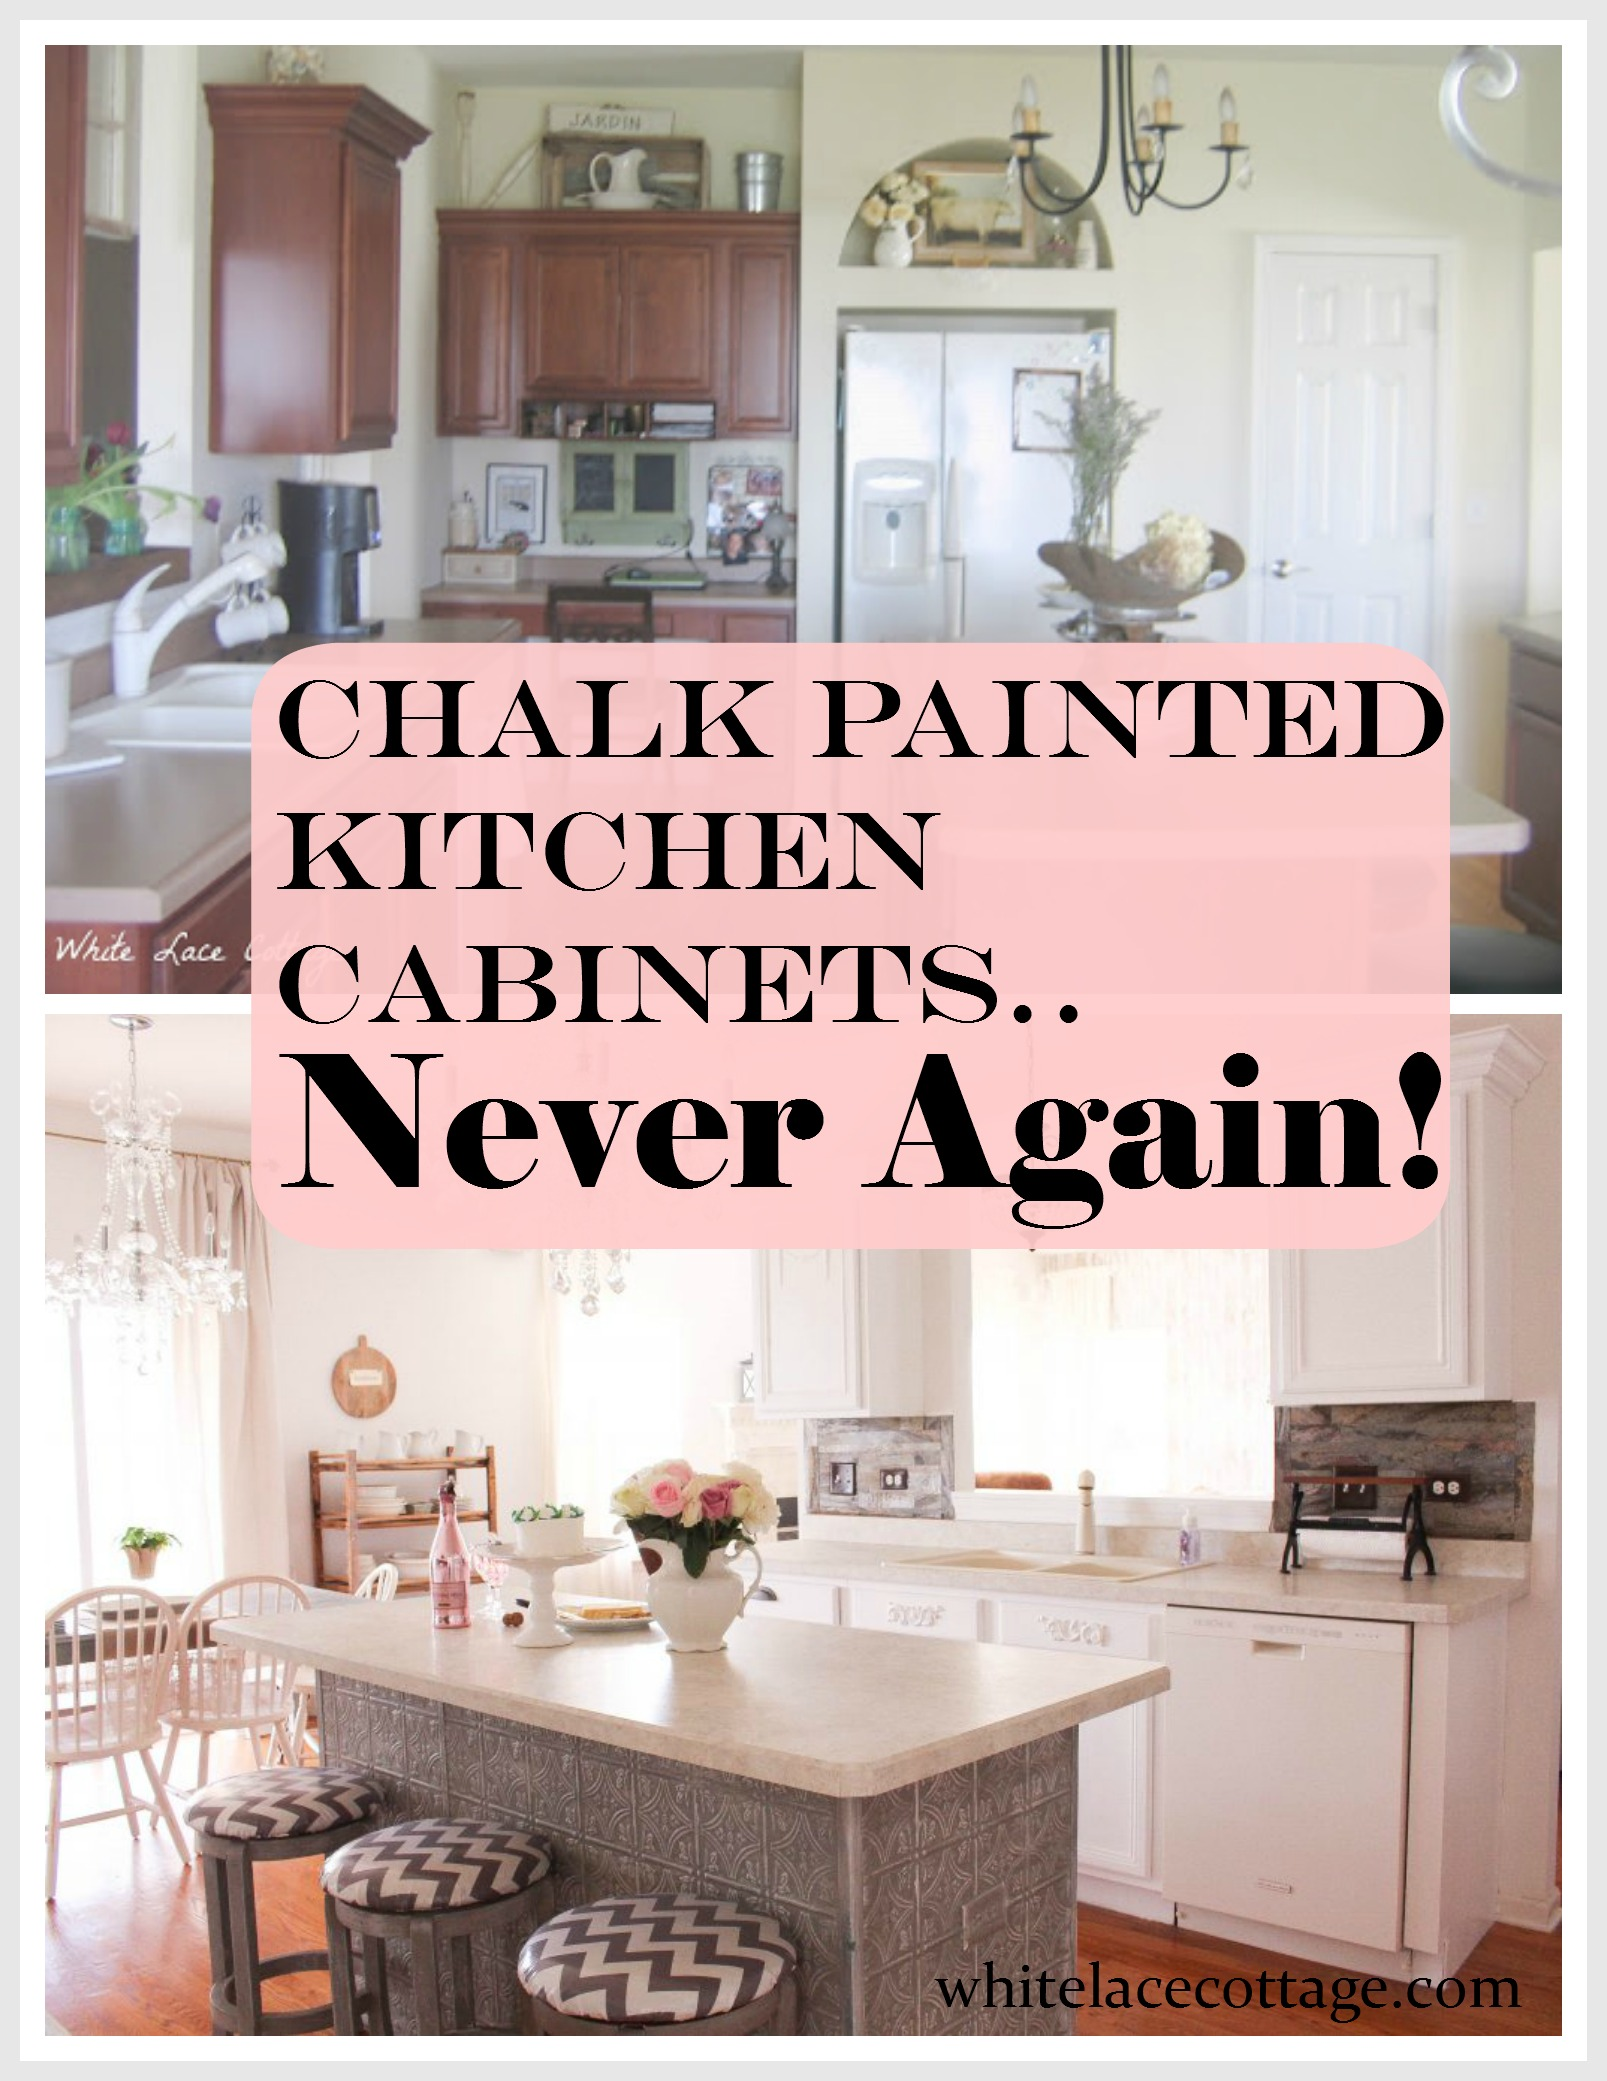 how do you paint kitchen cabinets white chalk painted kitchen cabinets never again white lace 16667